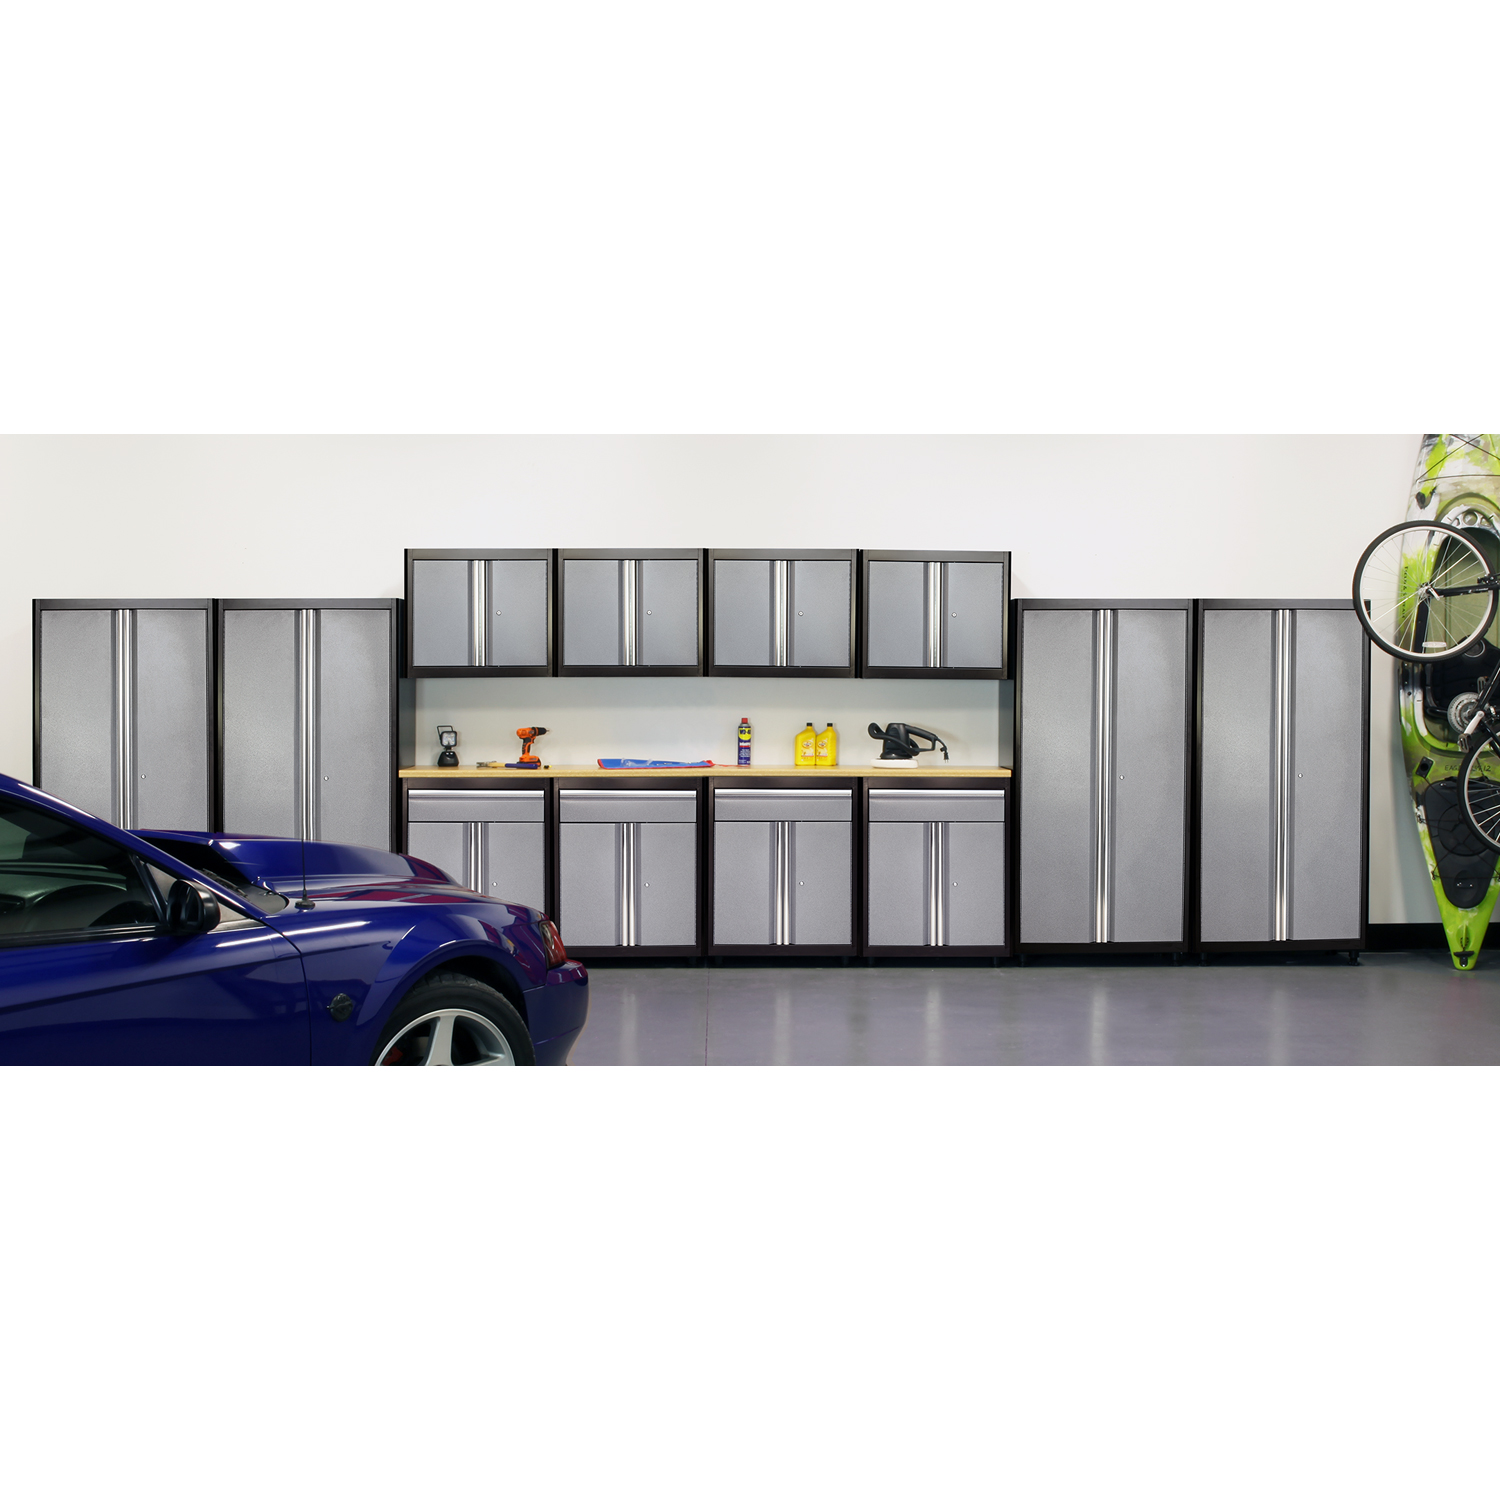 75 in. H x 264 in. W x 18 in. D Welded Steel Garage Storage System in Black/Multi-Granite (14-Piece)